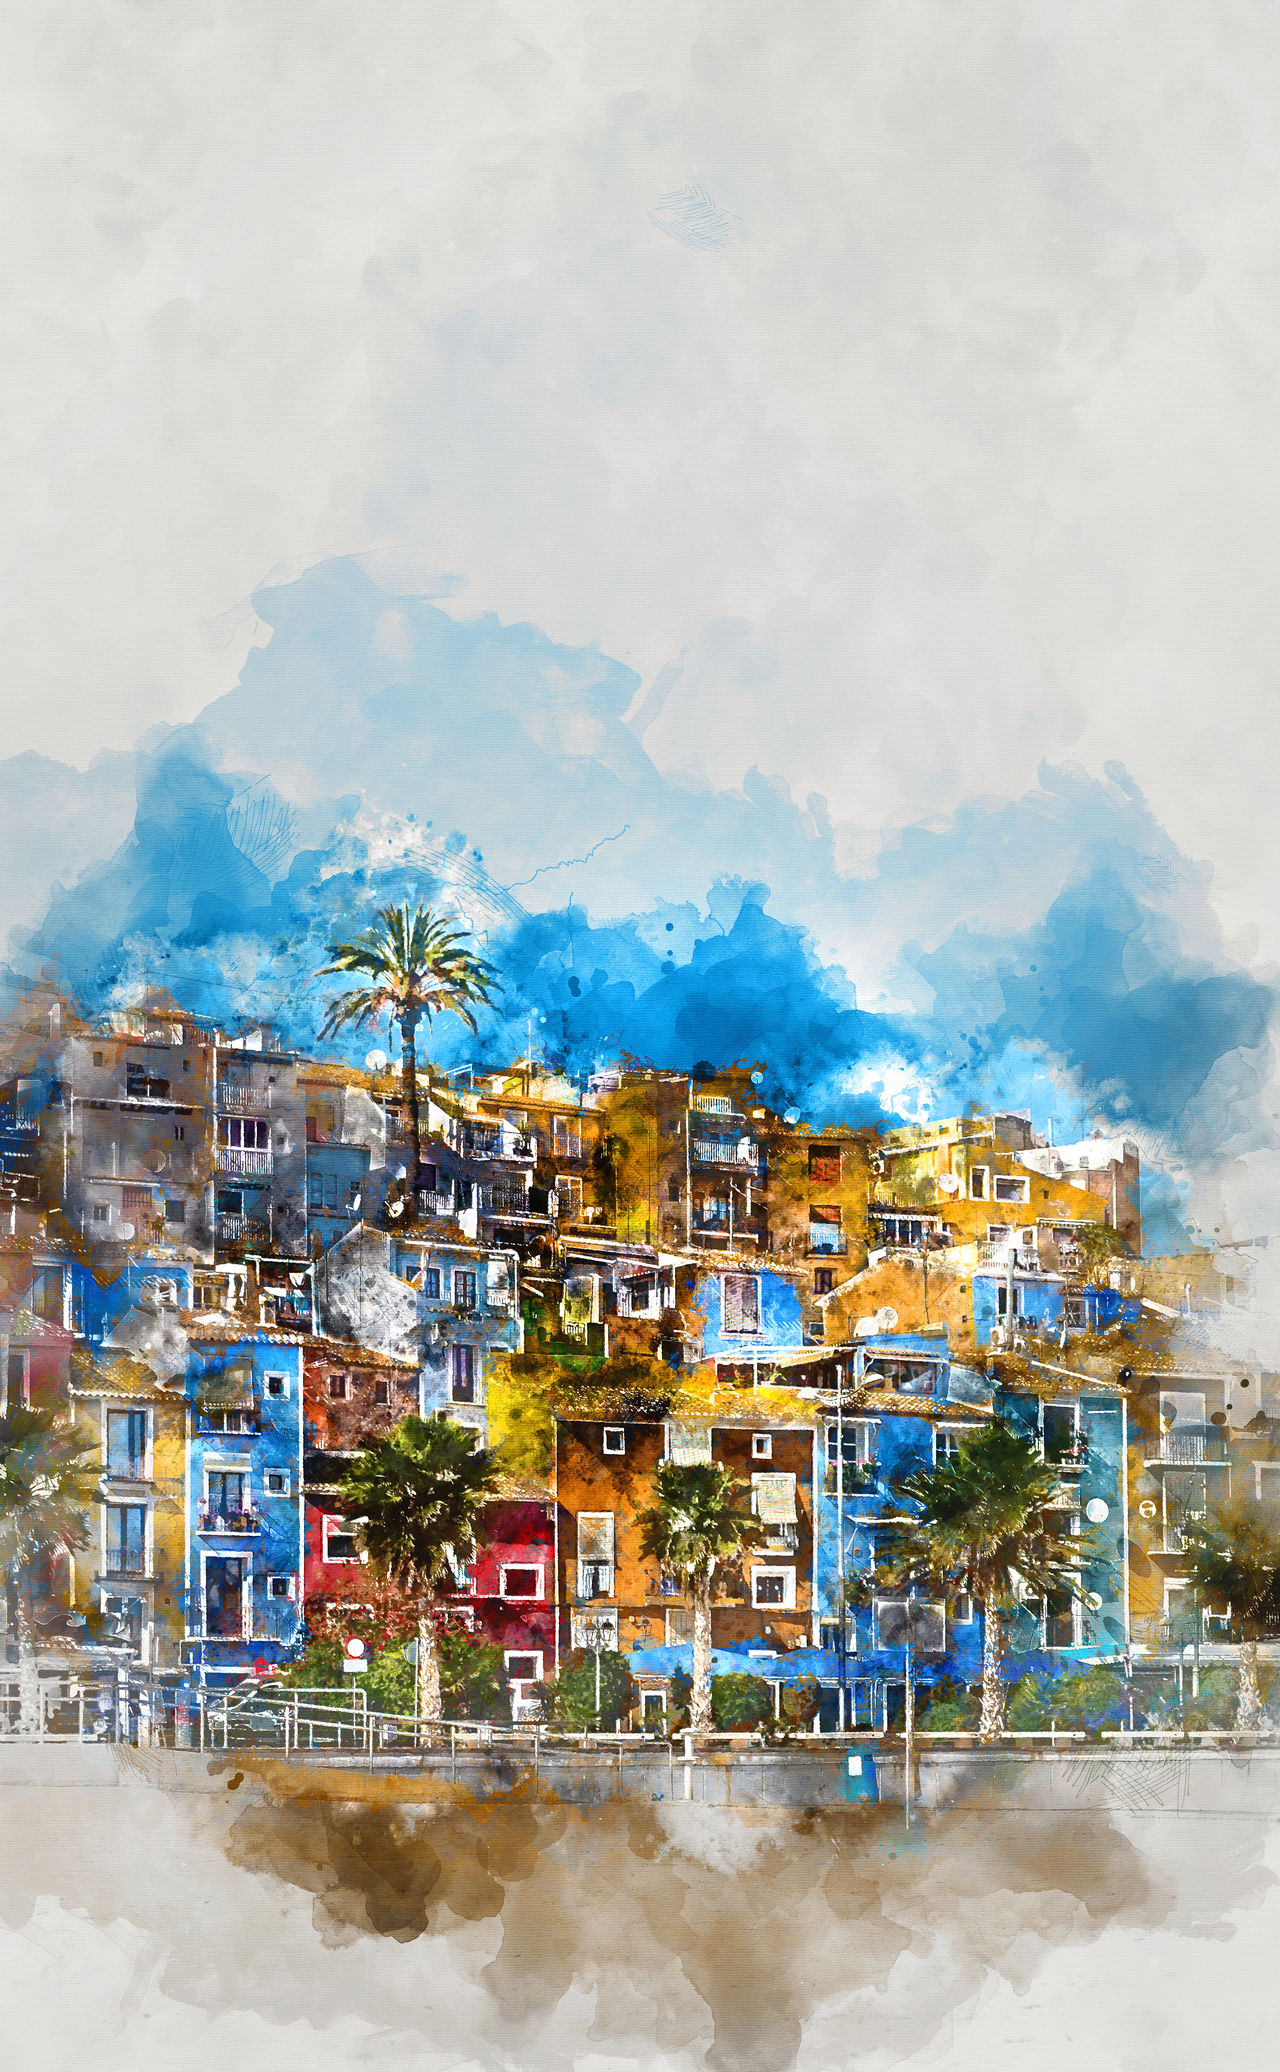 Digital watercolor painting of Villajoyosa town, Costa Blanca. Province of Alicante, Valencian Community, Spain Alicante Province Spain Architecture Art Colorful Costa Blanca Digital Art Digital Painting Digitally Generated Europe Houses Illustration Multicolored Houses No People Outdoors Palm Trees Picturesque Village SPAIN Tourism Tourist Resort Town Travel Destinations Villa Joyosa Village Villajoyosa